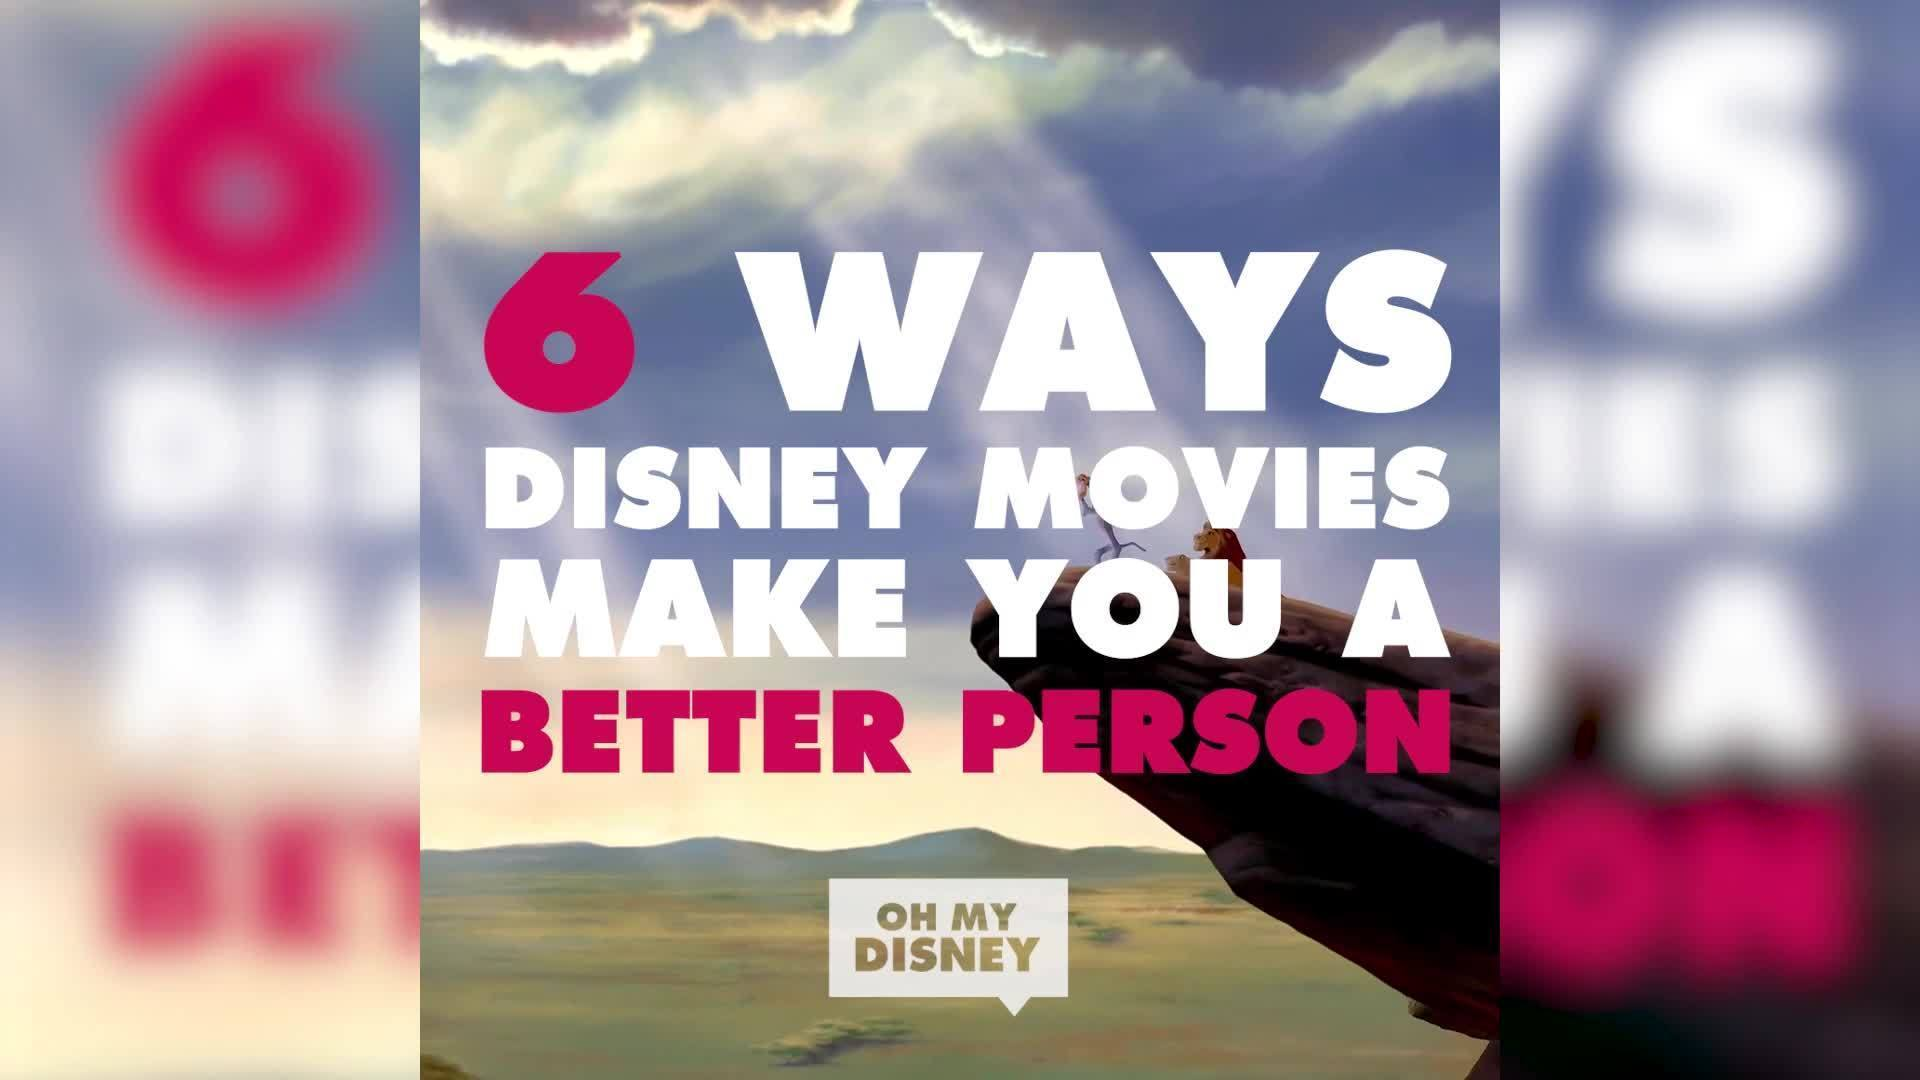 6 Ways Disney Movies Make You a Better Person | ListVids by Oh My Disney